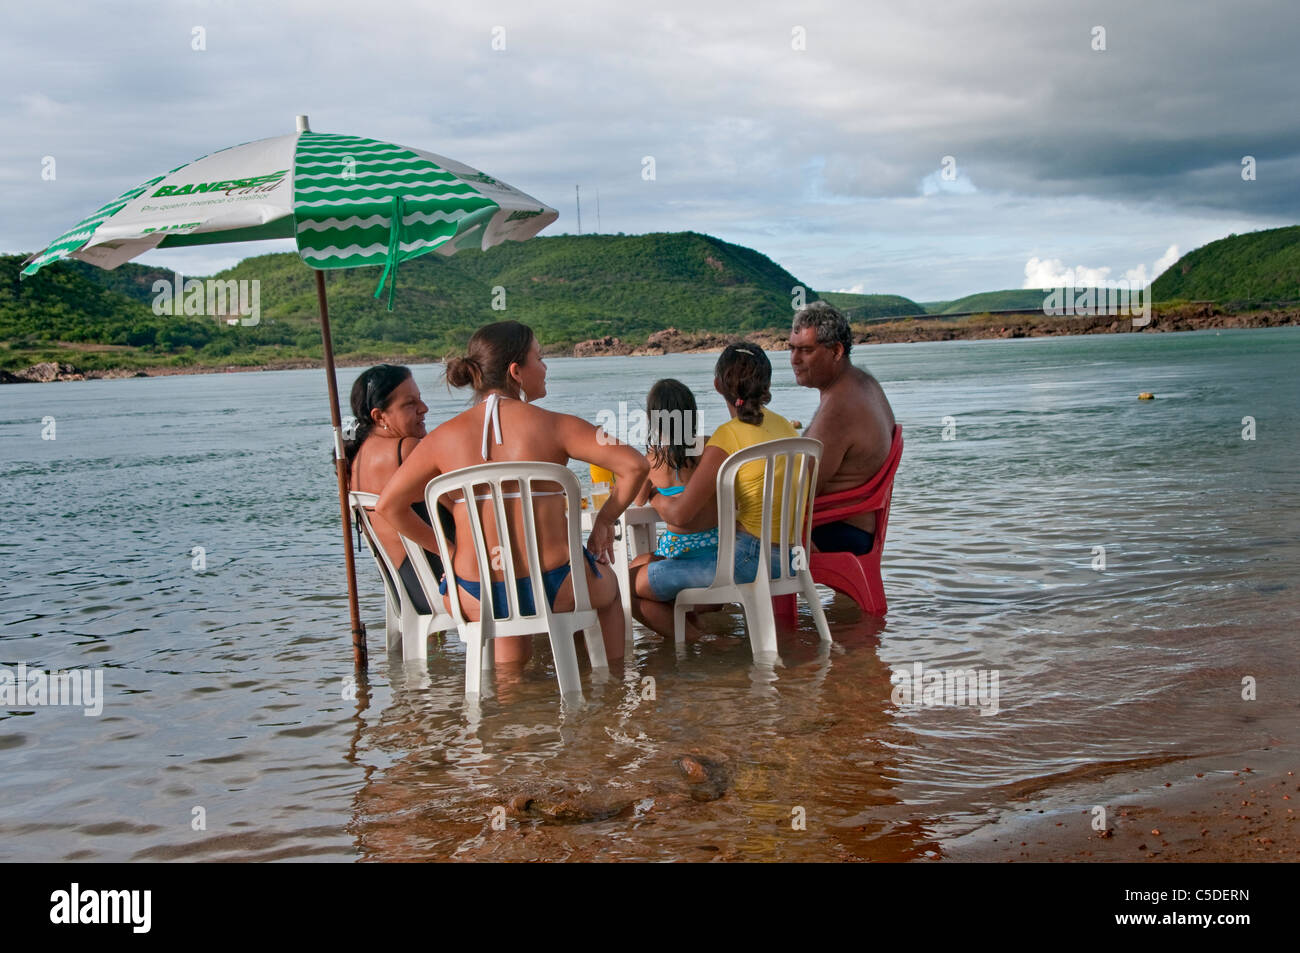 Having a meal  at table and chairs in the river  to keep cool - Stock Image